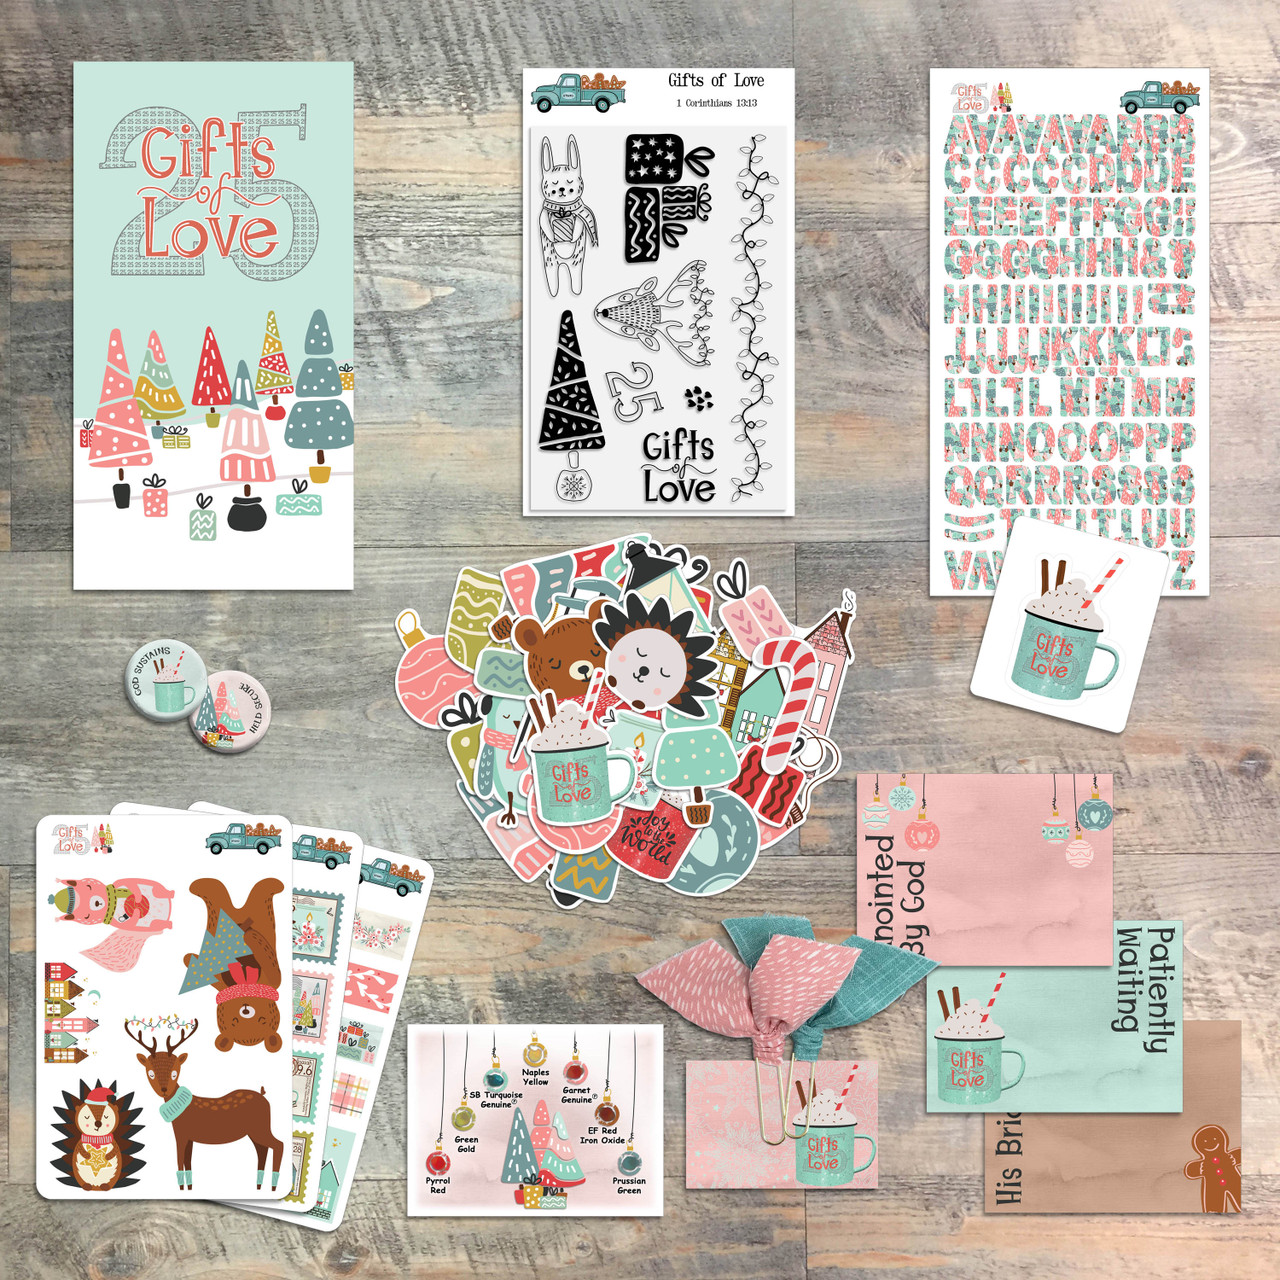 25 Gifts of Love - Devotional Kit for Bible Journaling from ByTheWell4God